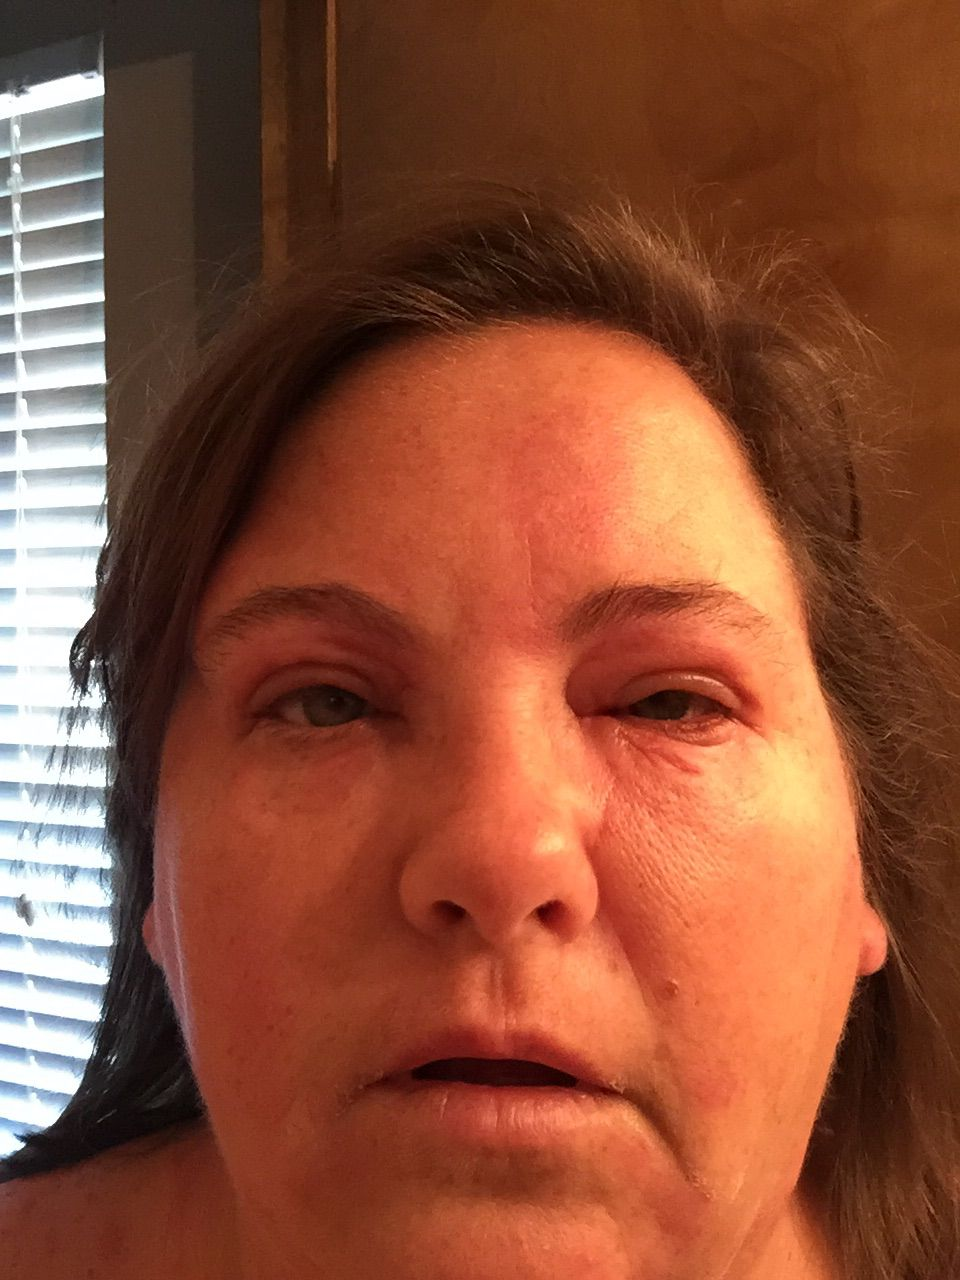 My wife has chronic idiopathic urticaria/hives. 8 months, very itchy & painful, lately been daily & all over, including angiodema/swelling image